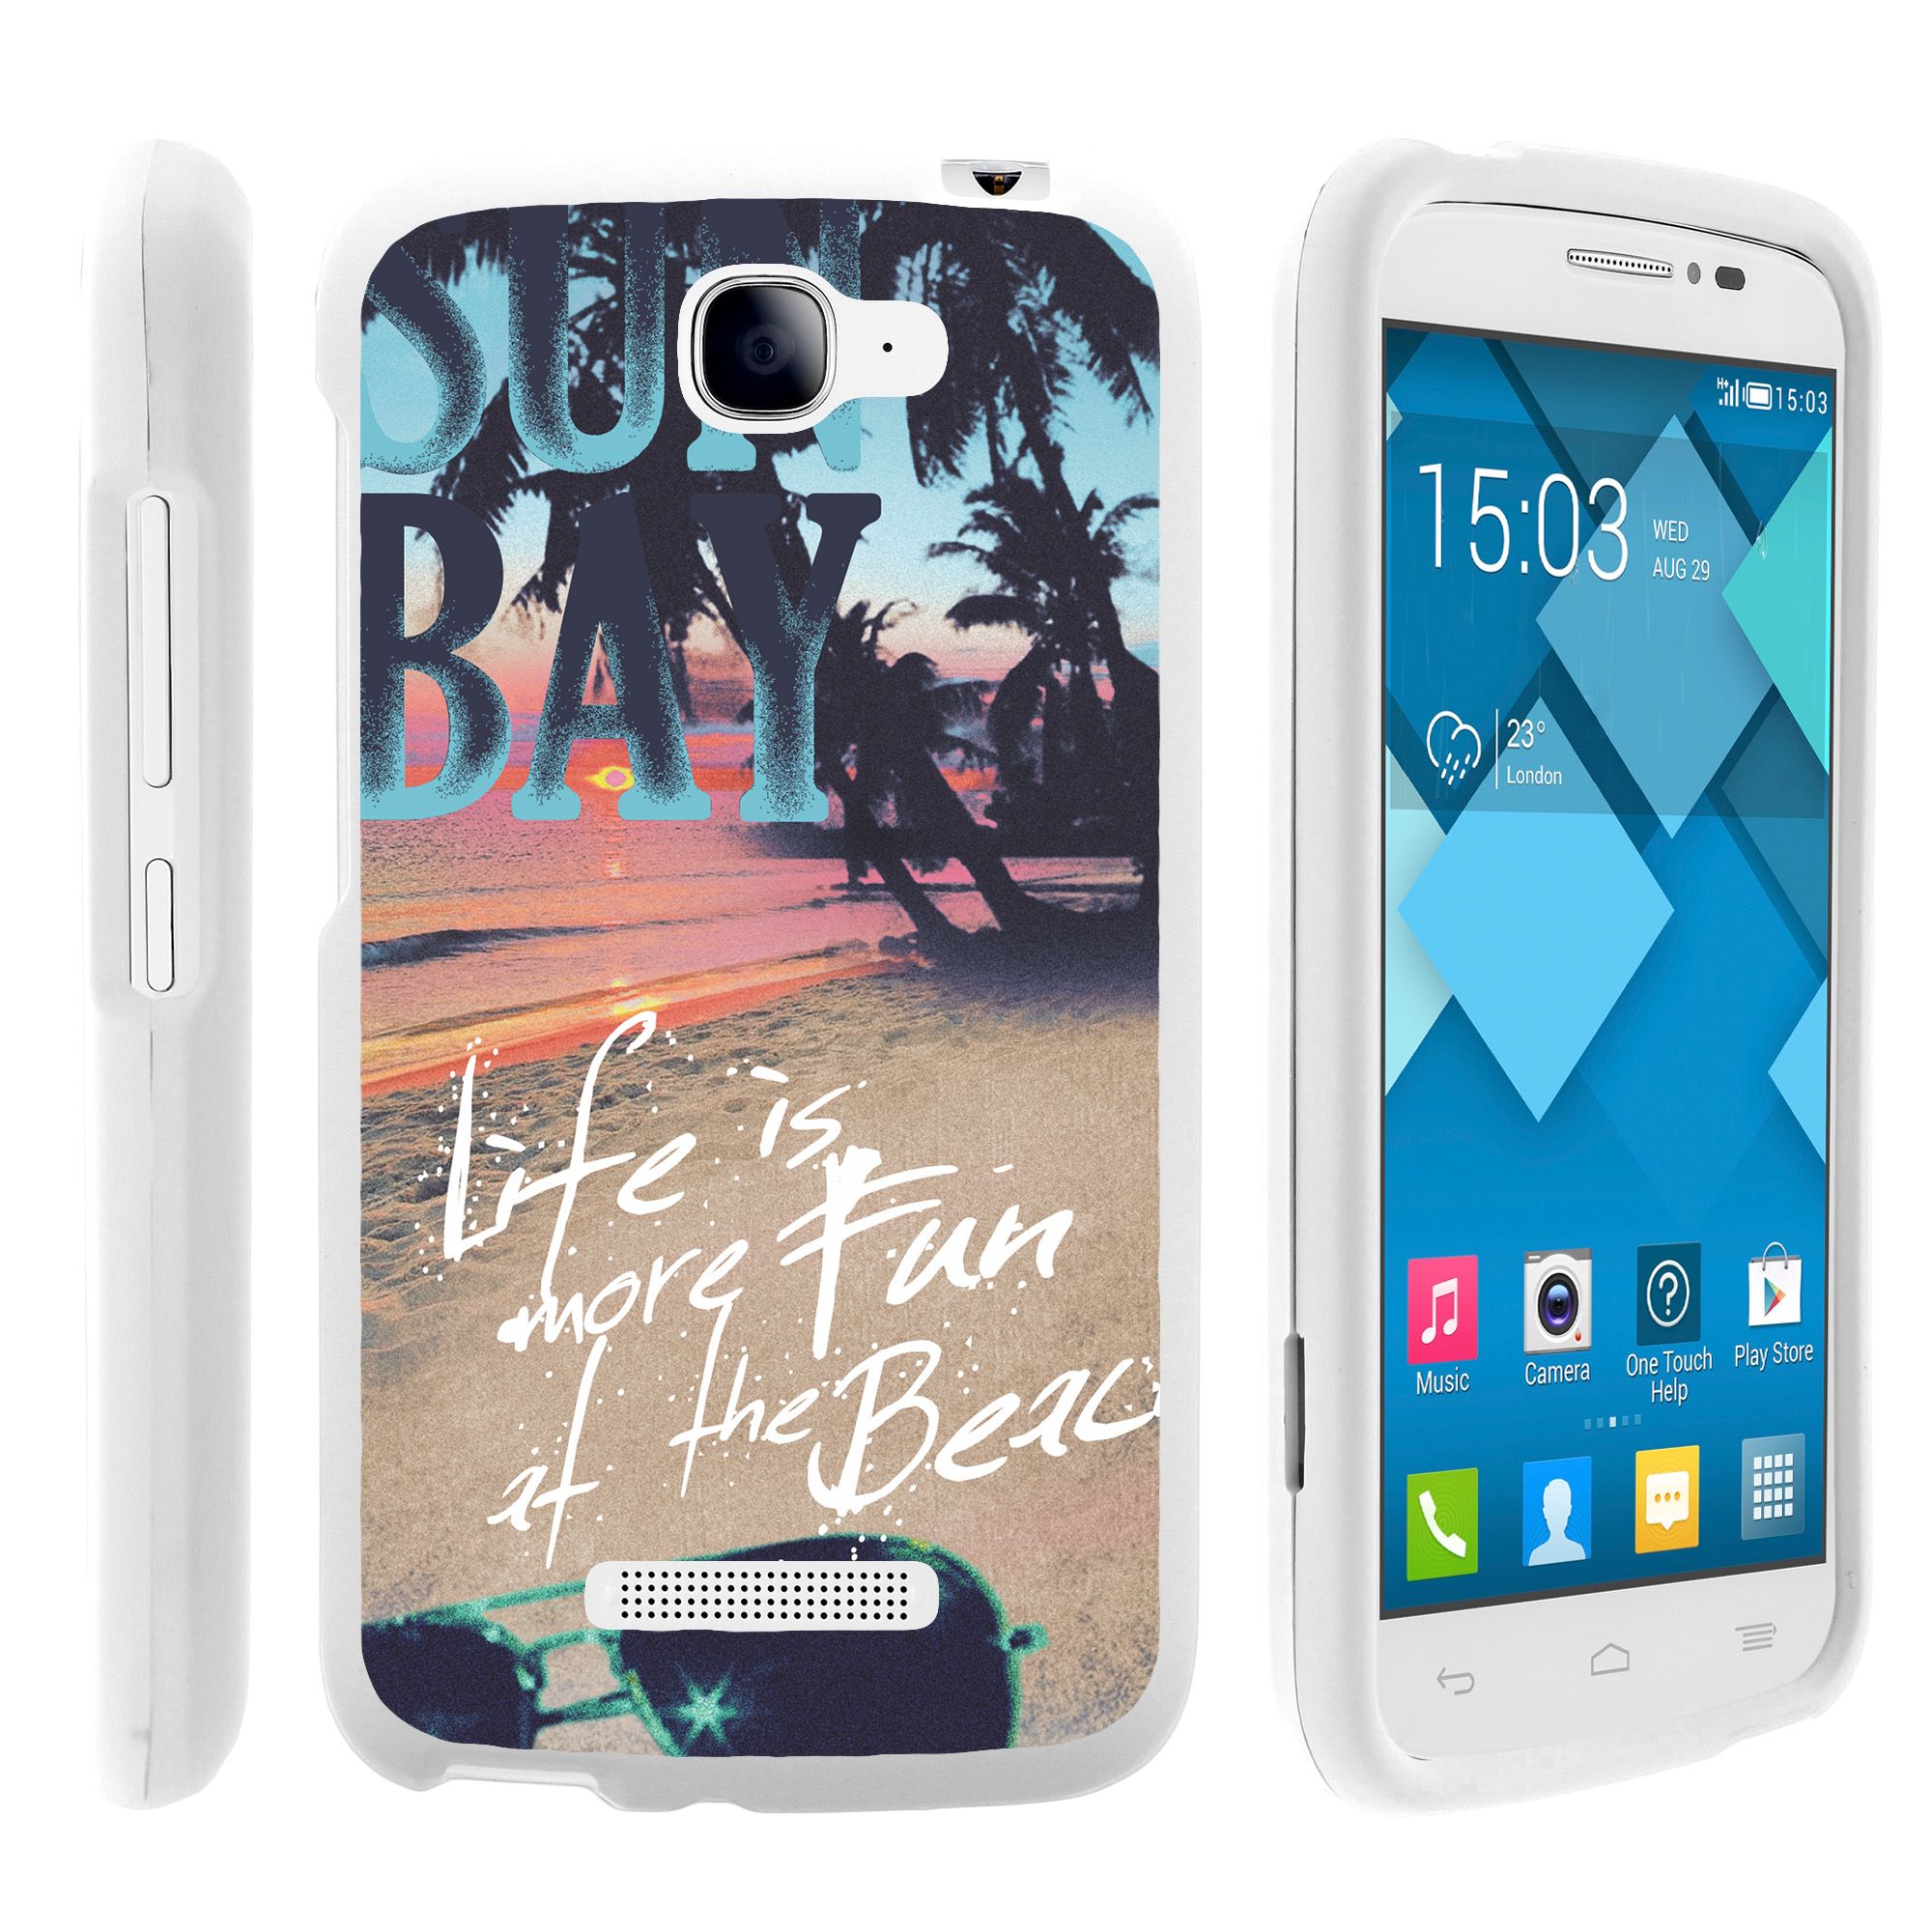 Alcatel Fierce 2, Pop Icon, 7040T, and A564C, [SNAP SHELL][White] Hard White Plastic Case with Non Slip Matte Coating with Custom Designs - Life at the Beach